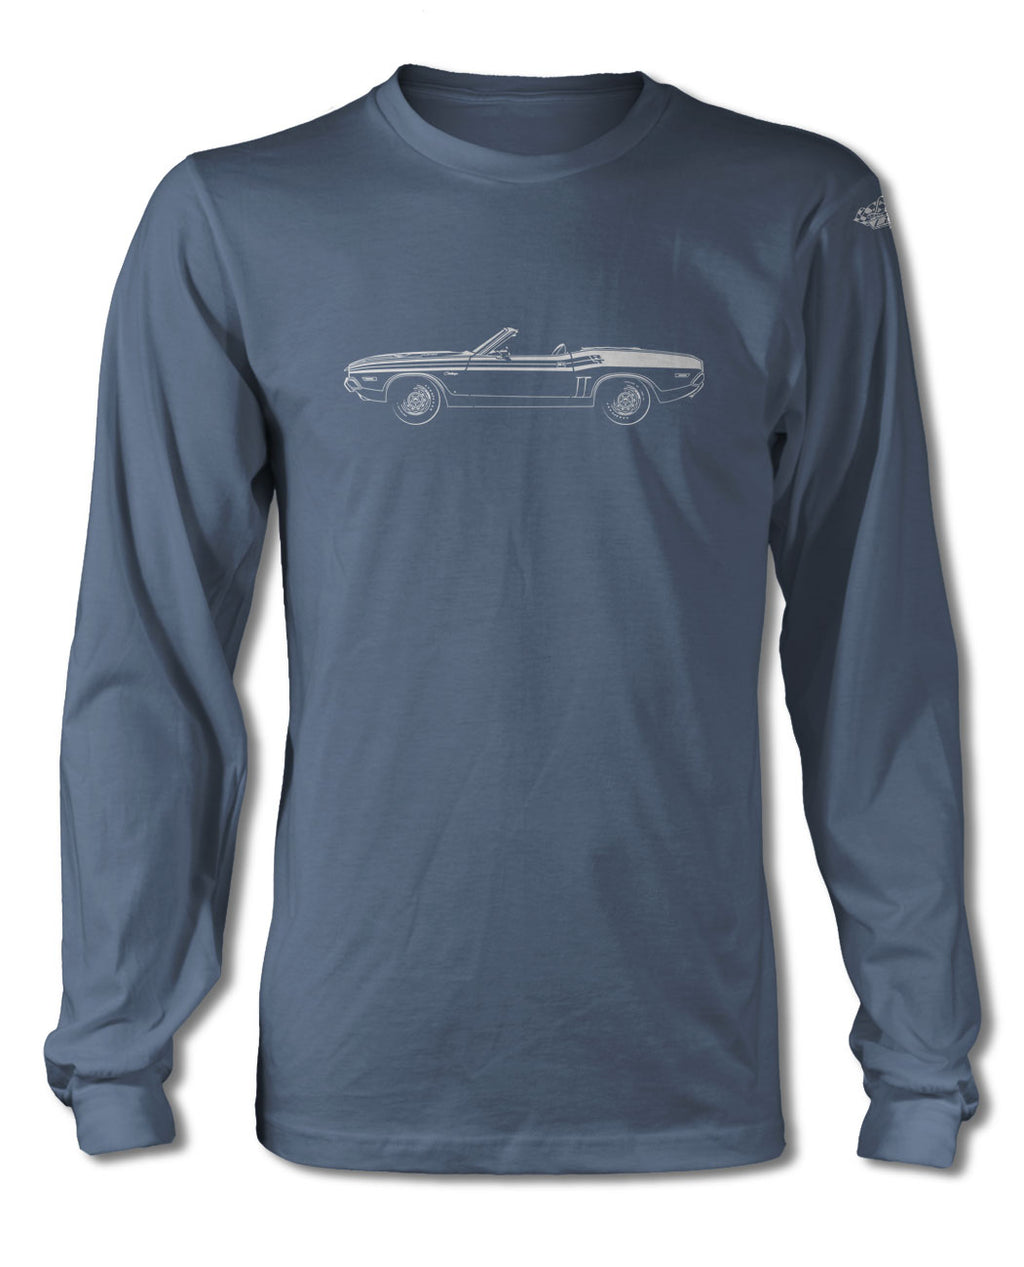 1971 Dodge Challenger RT with Stripes Convertible Bulge Hood T-Shirt - Long Sleeves - Side View